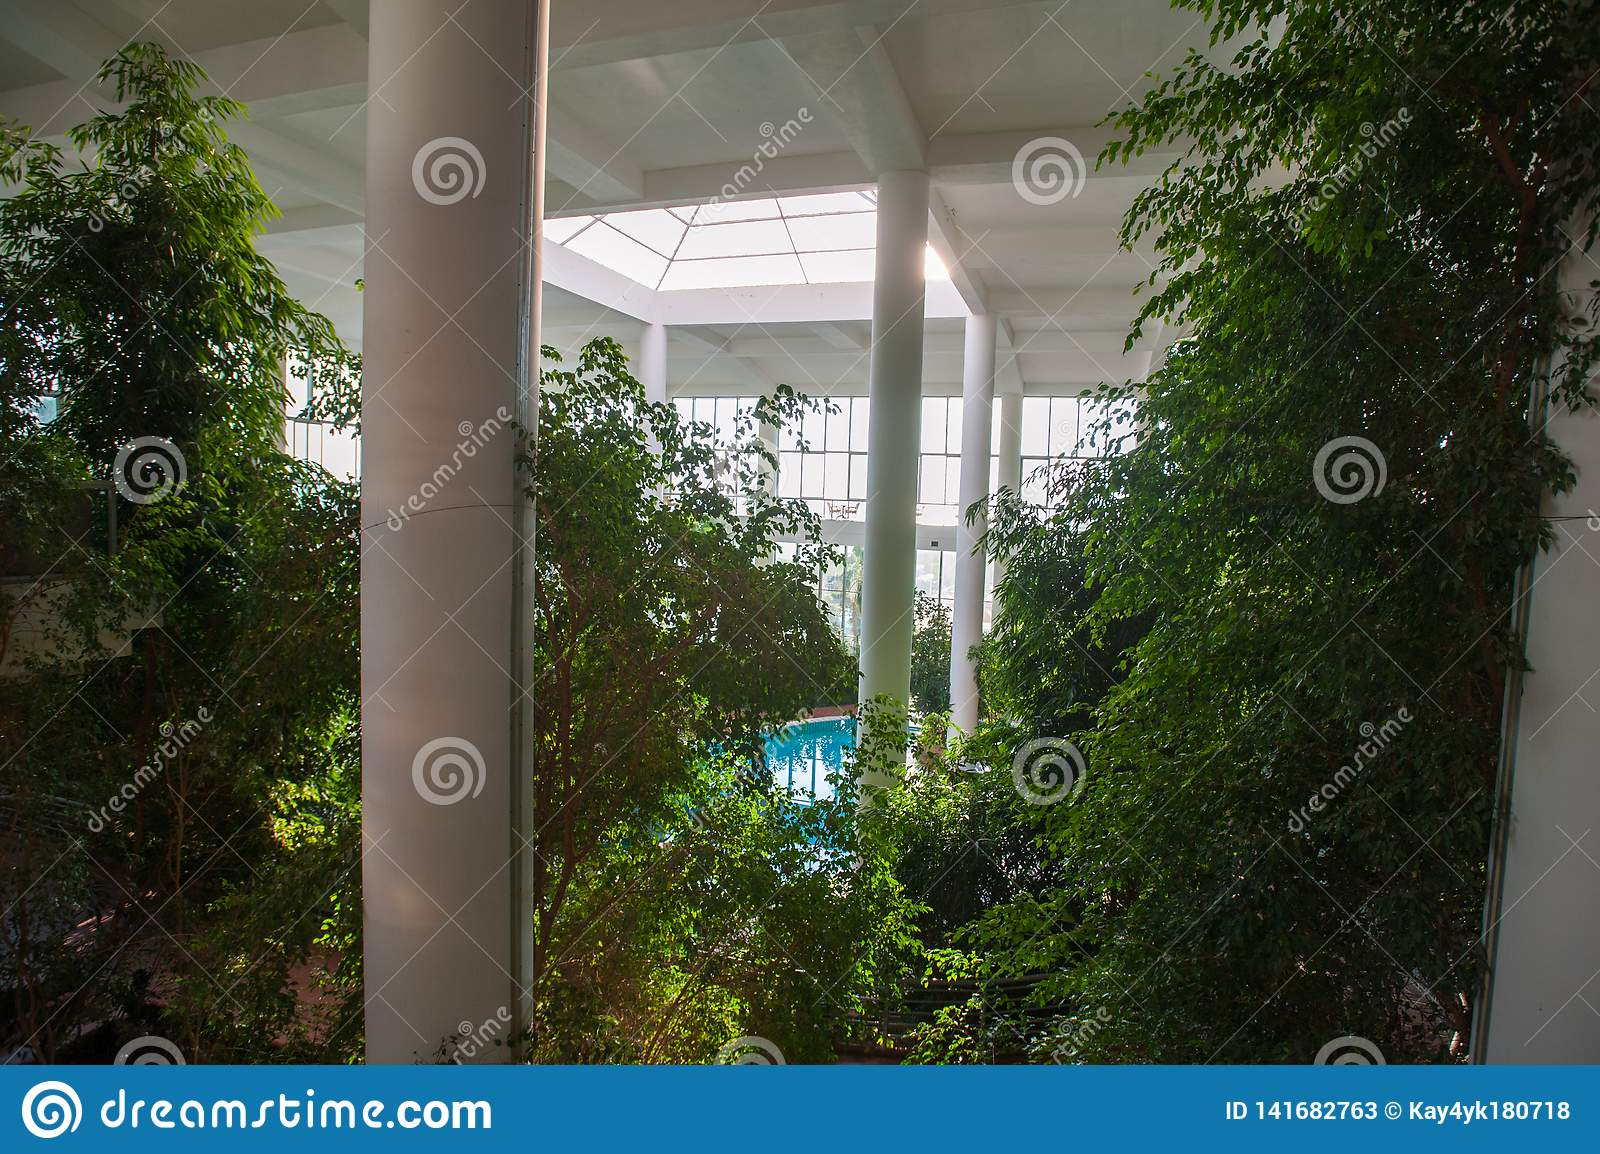 Greenhouse inside the building, with a pool inside among the vegetation